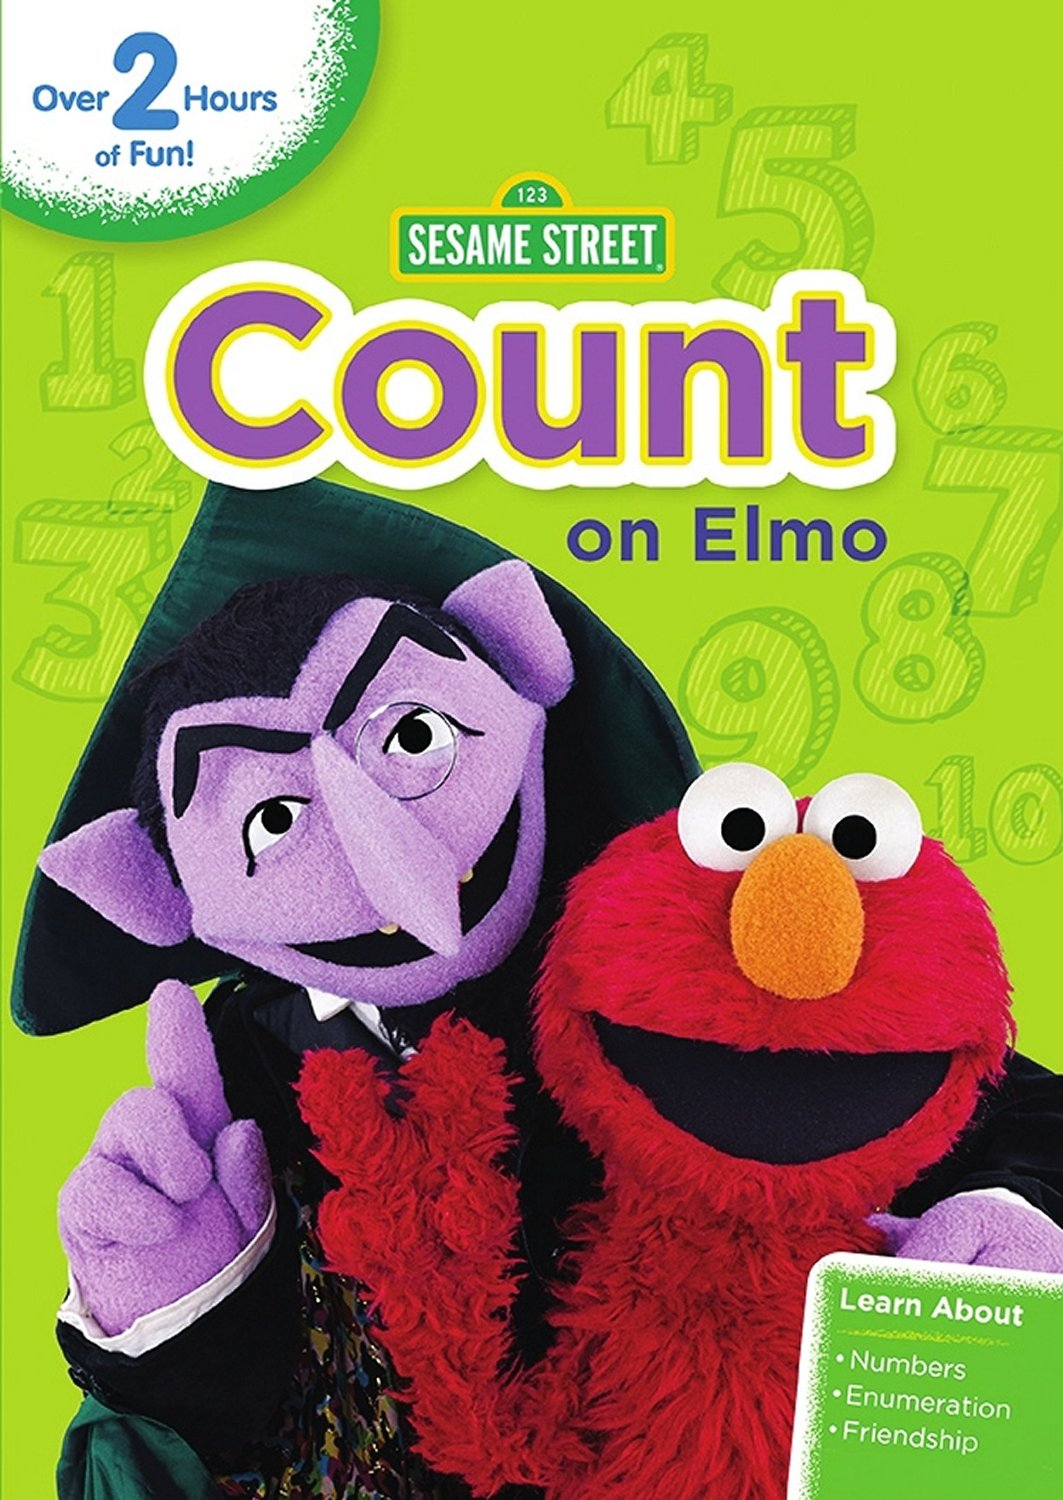 Sesame Street Count On Elmo Now Available On Dvd Bragging